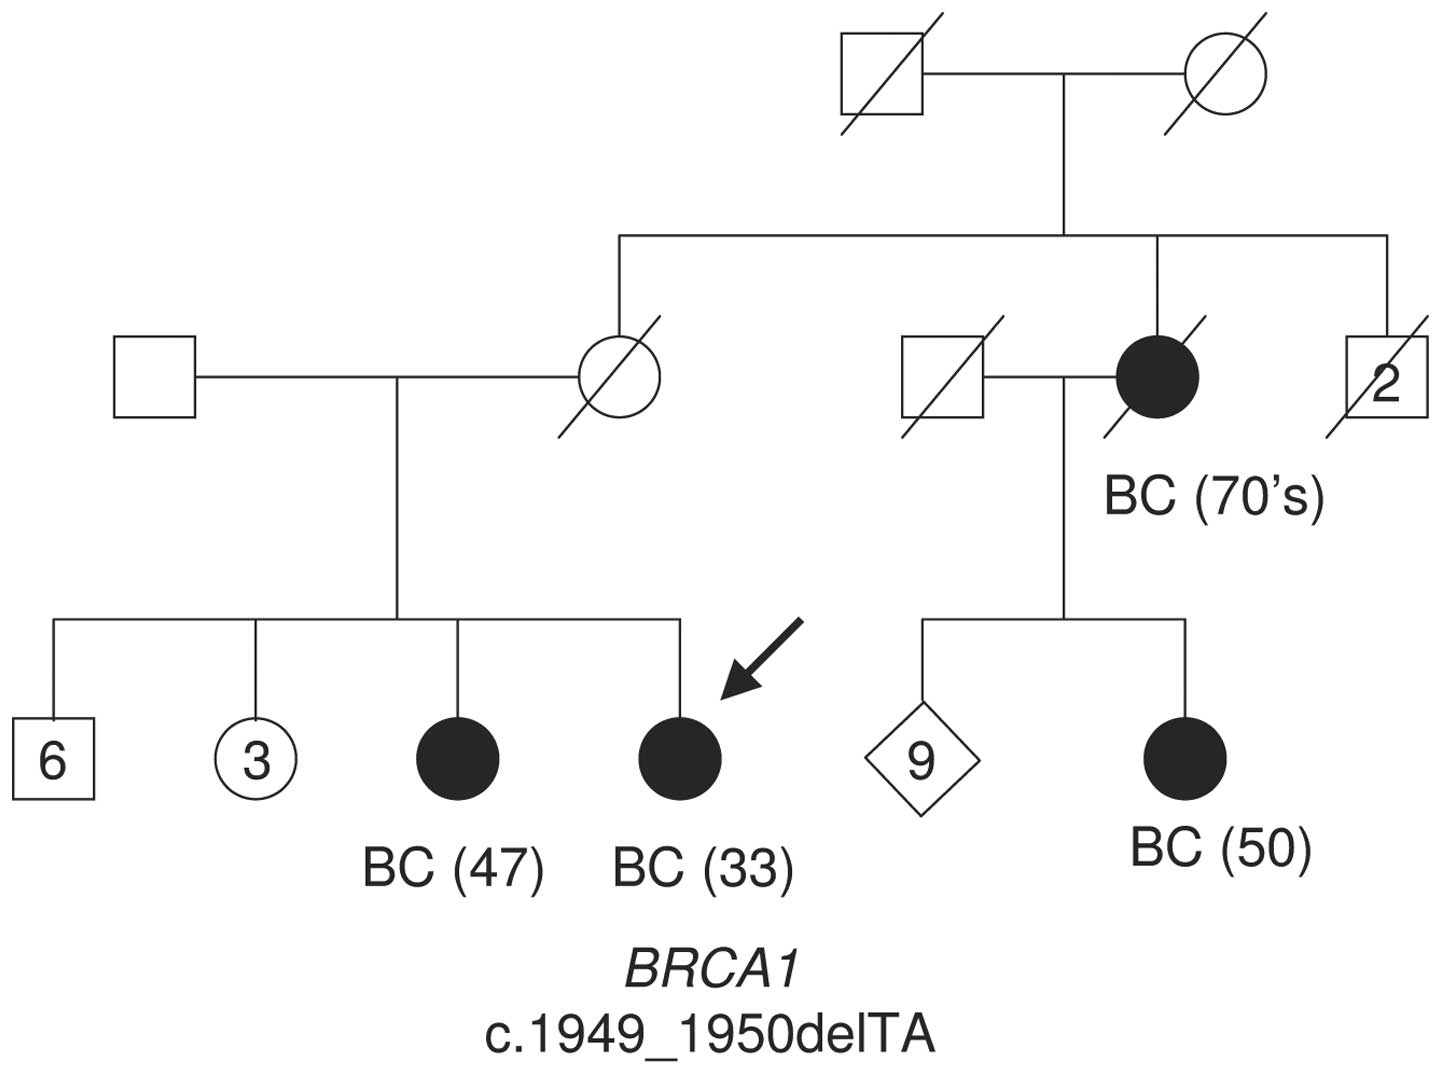 breast cancer 1 early onset gene analysis The association between prostate cancer and breast cancer in the same family may be explained, in part, by the increased risk of prostate cancer among men with brca1/brca2 pathogenic variants in the setting of hereditary breast/ovarian cancer or early-onset prostate cancer[31-34] (refer to the brca1 and brca2 section of this summary for more.